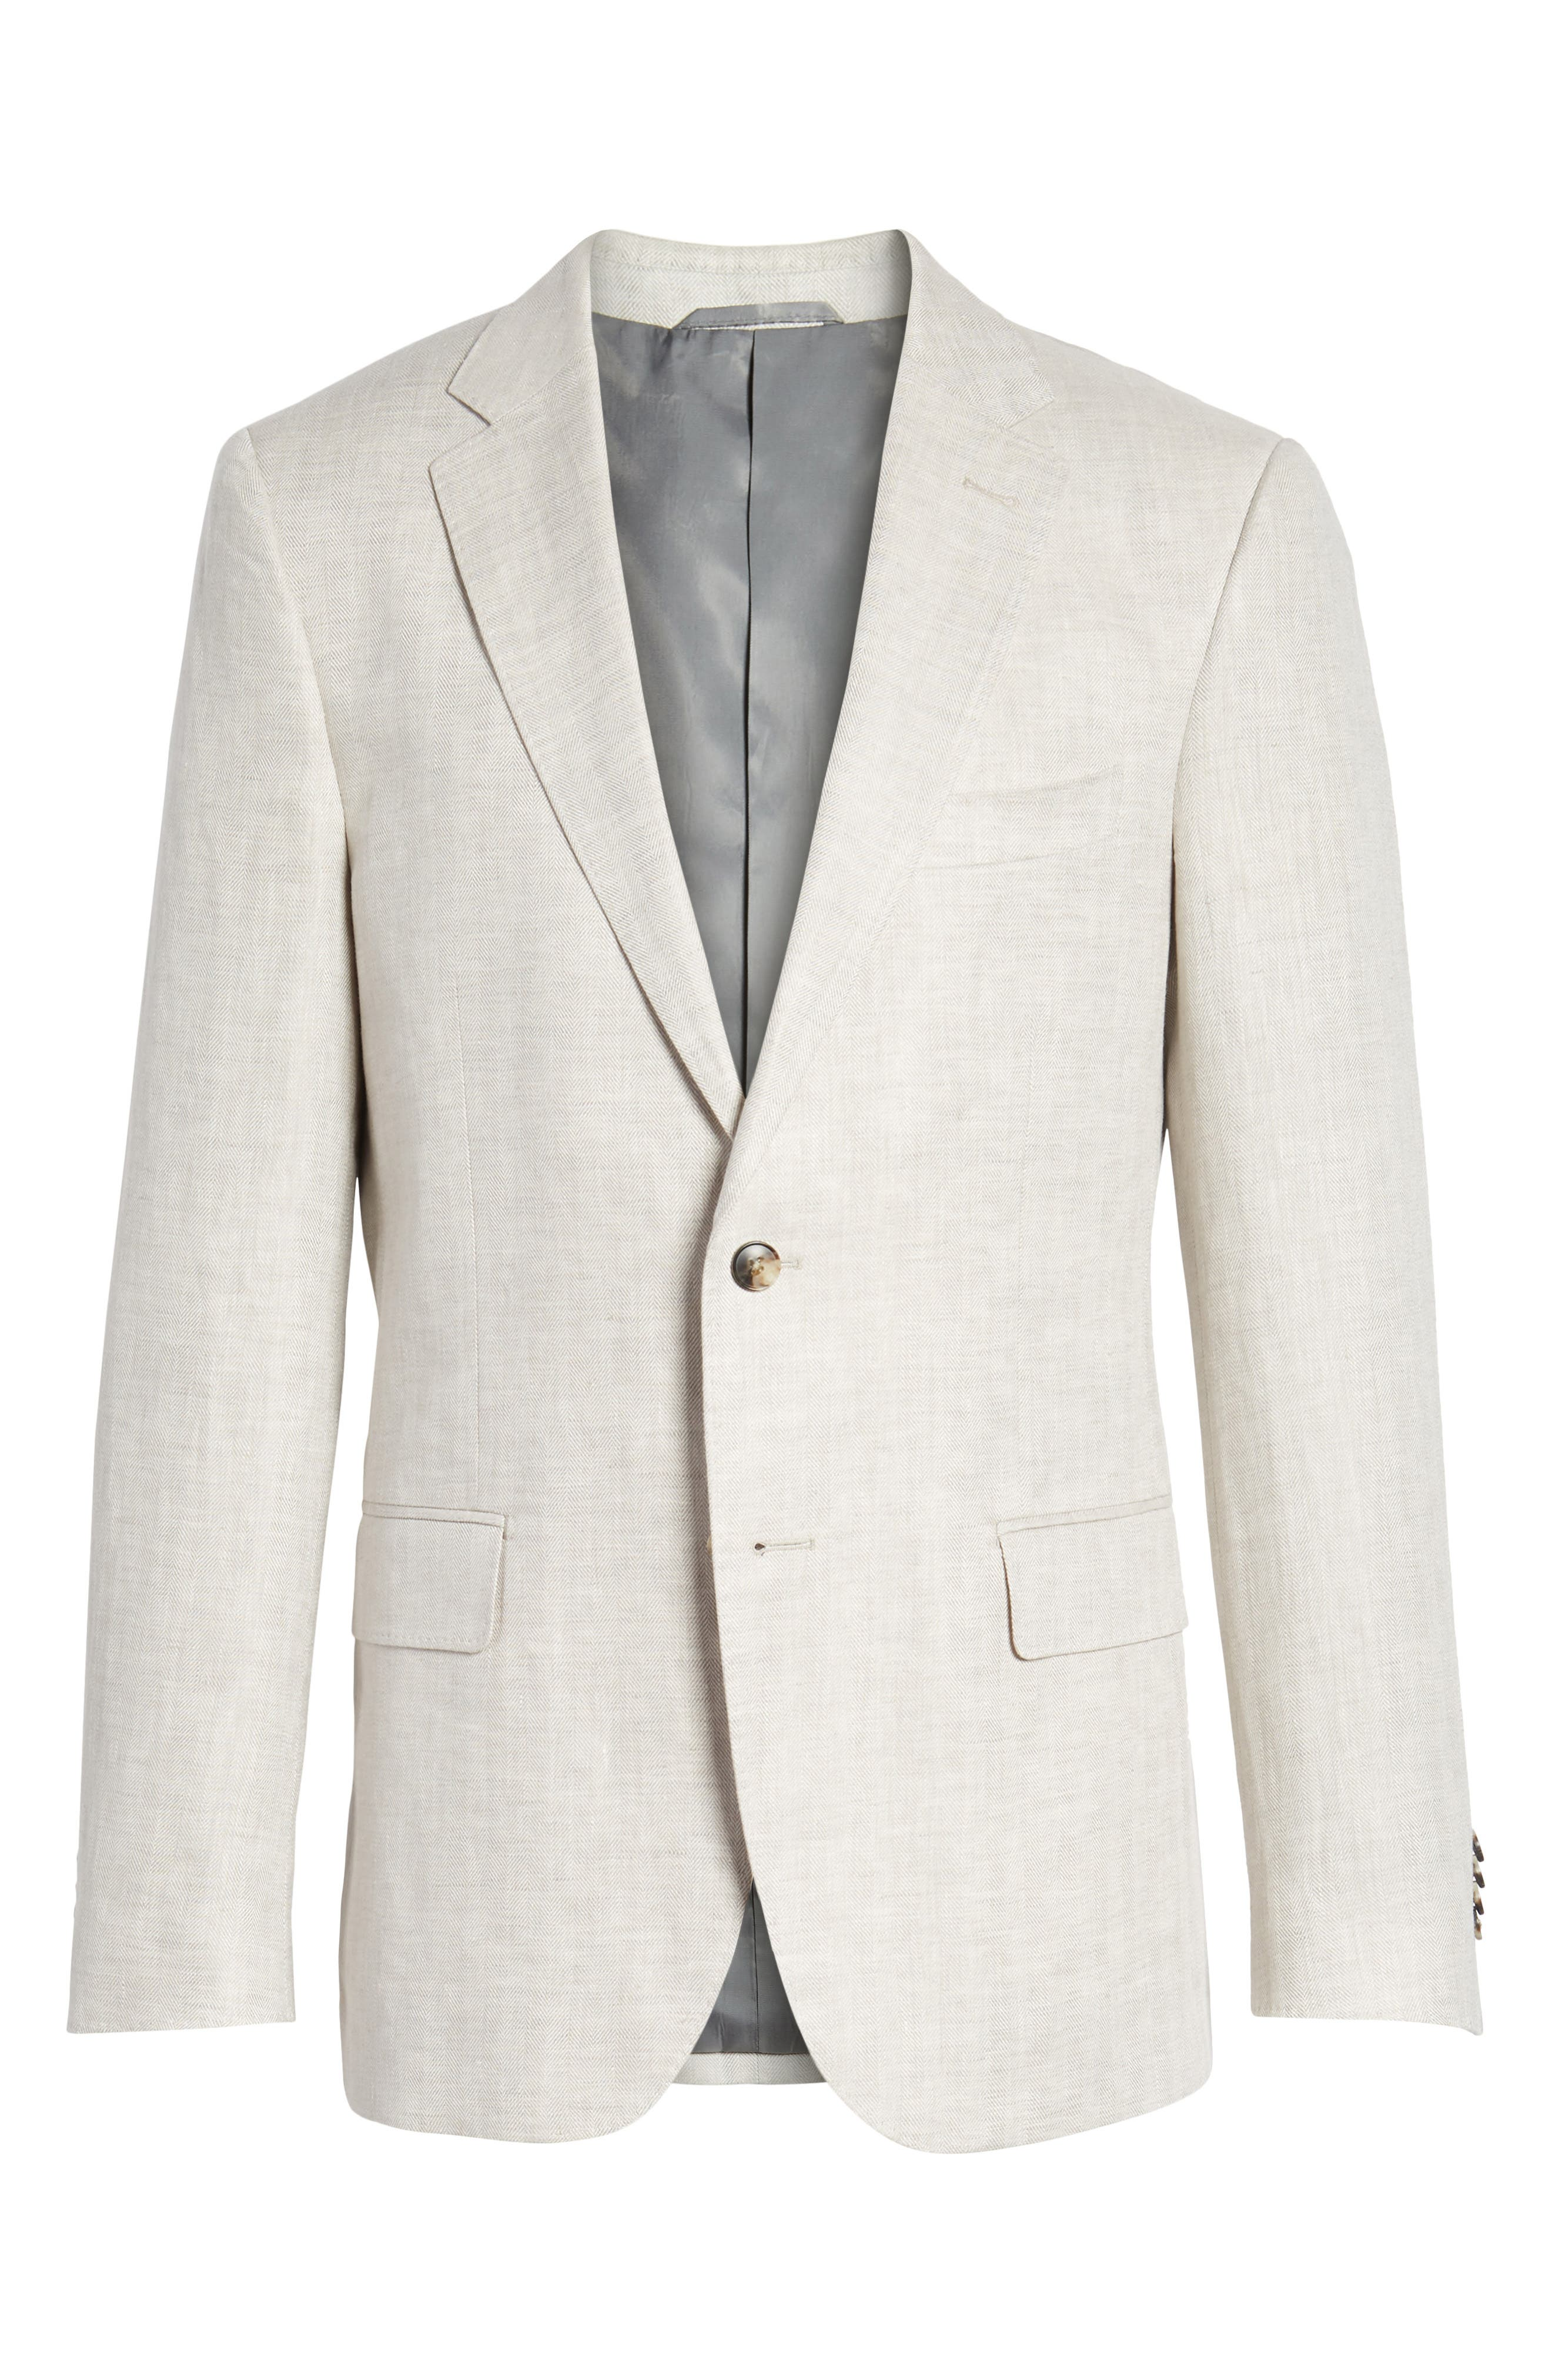 Benson Road Linen Sport Coat,                             Alternate thumbnail 5, color,                             NATURAL